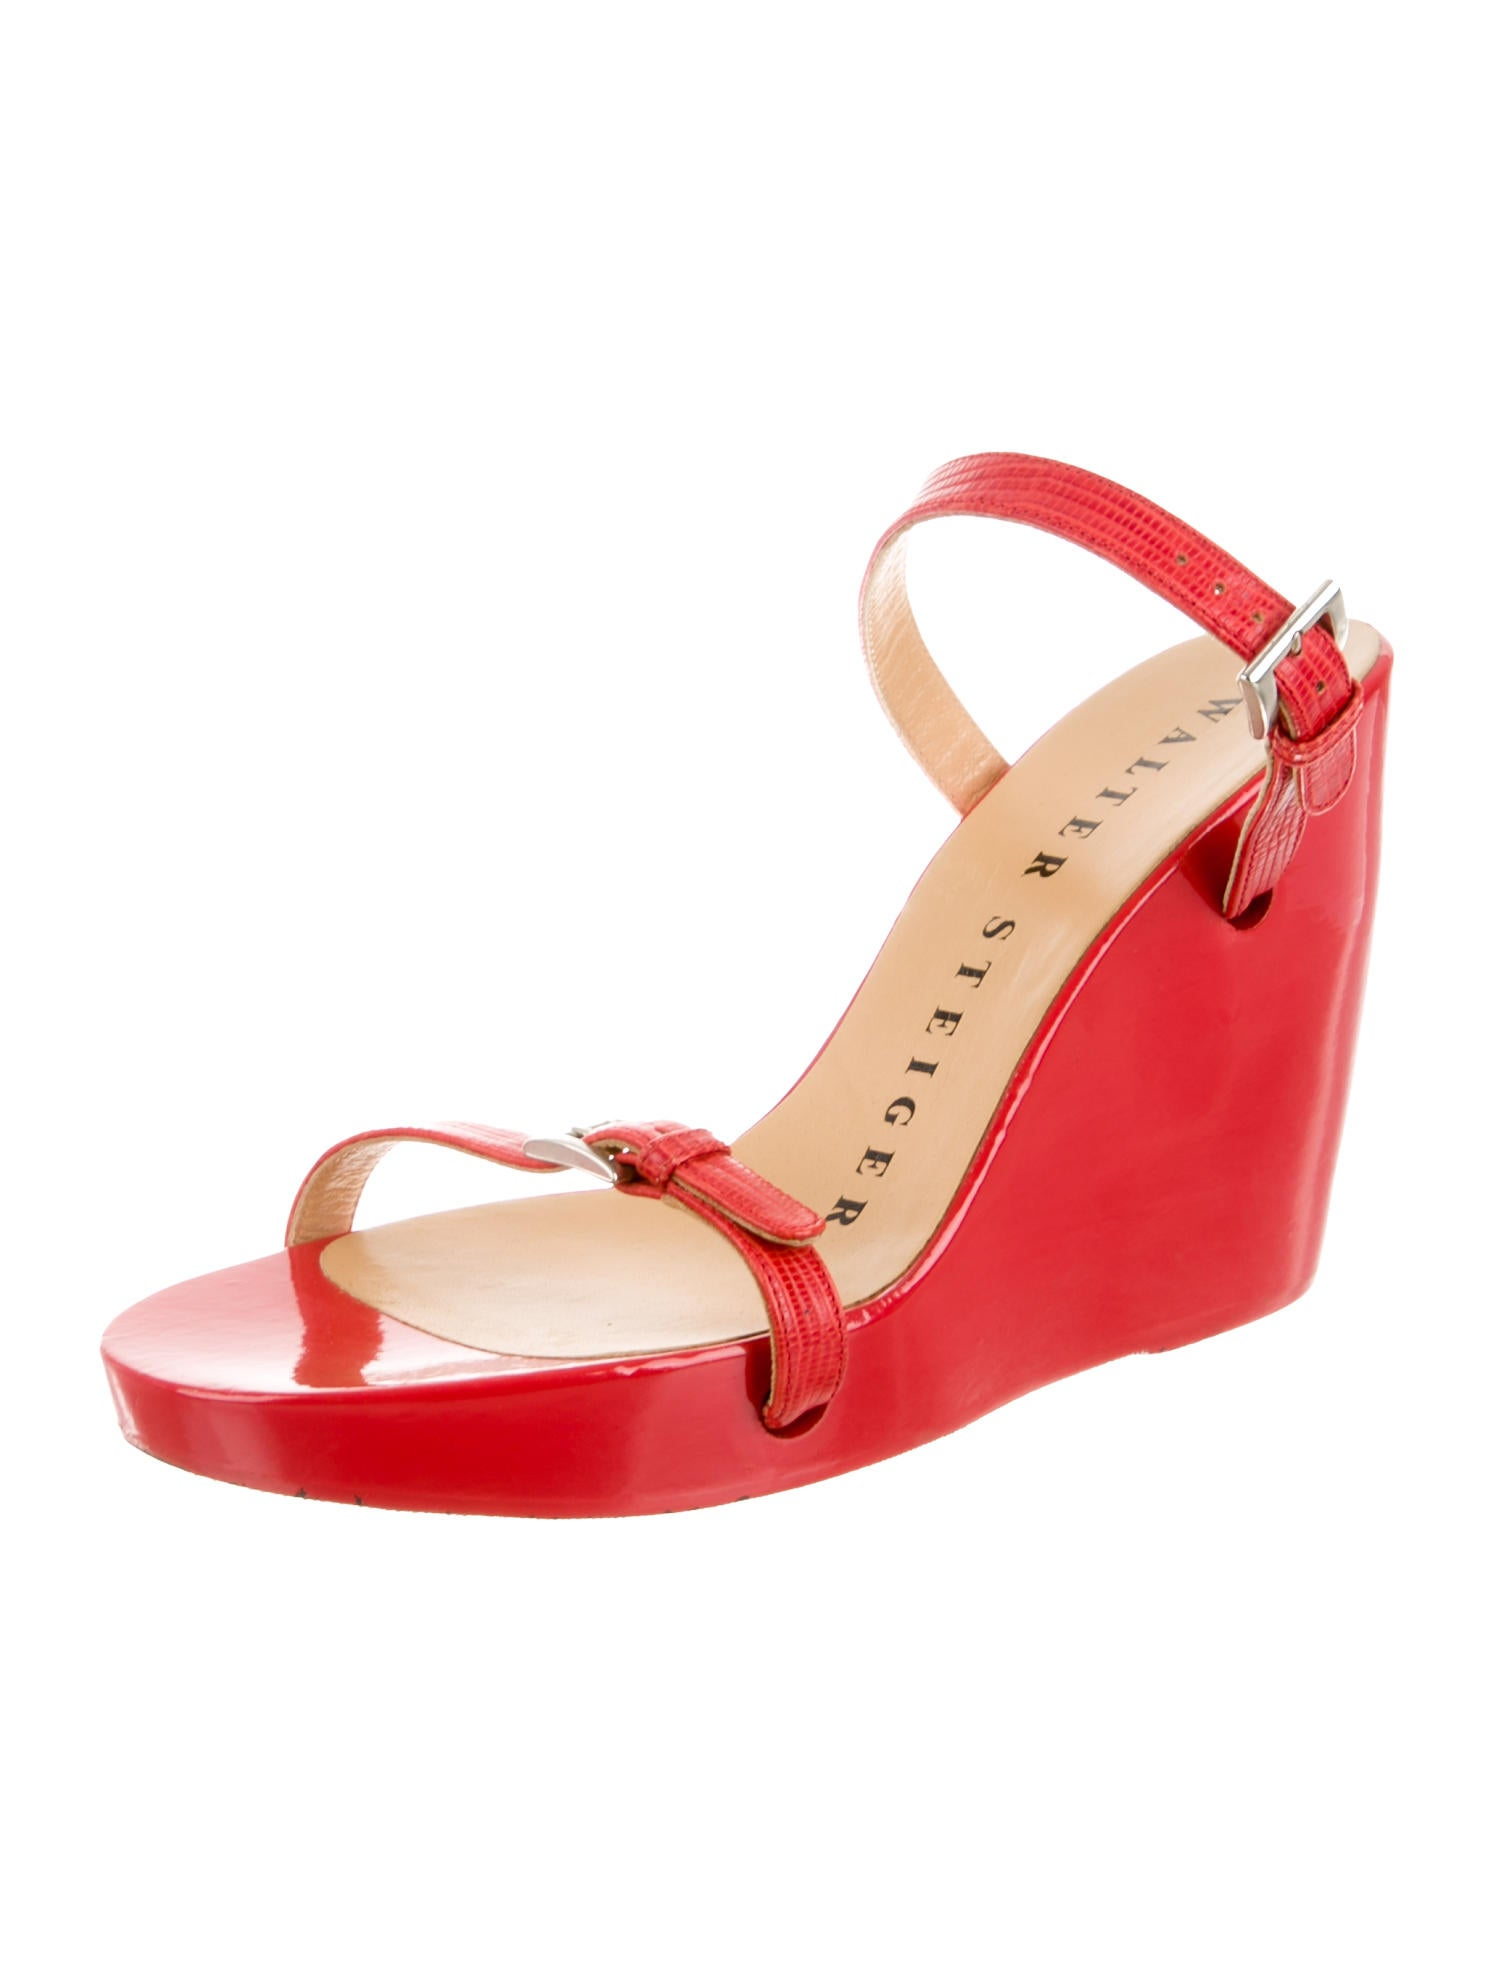 walter steiger slide wedges shoes sti20255 the realreal